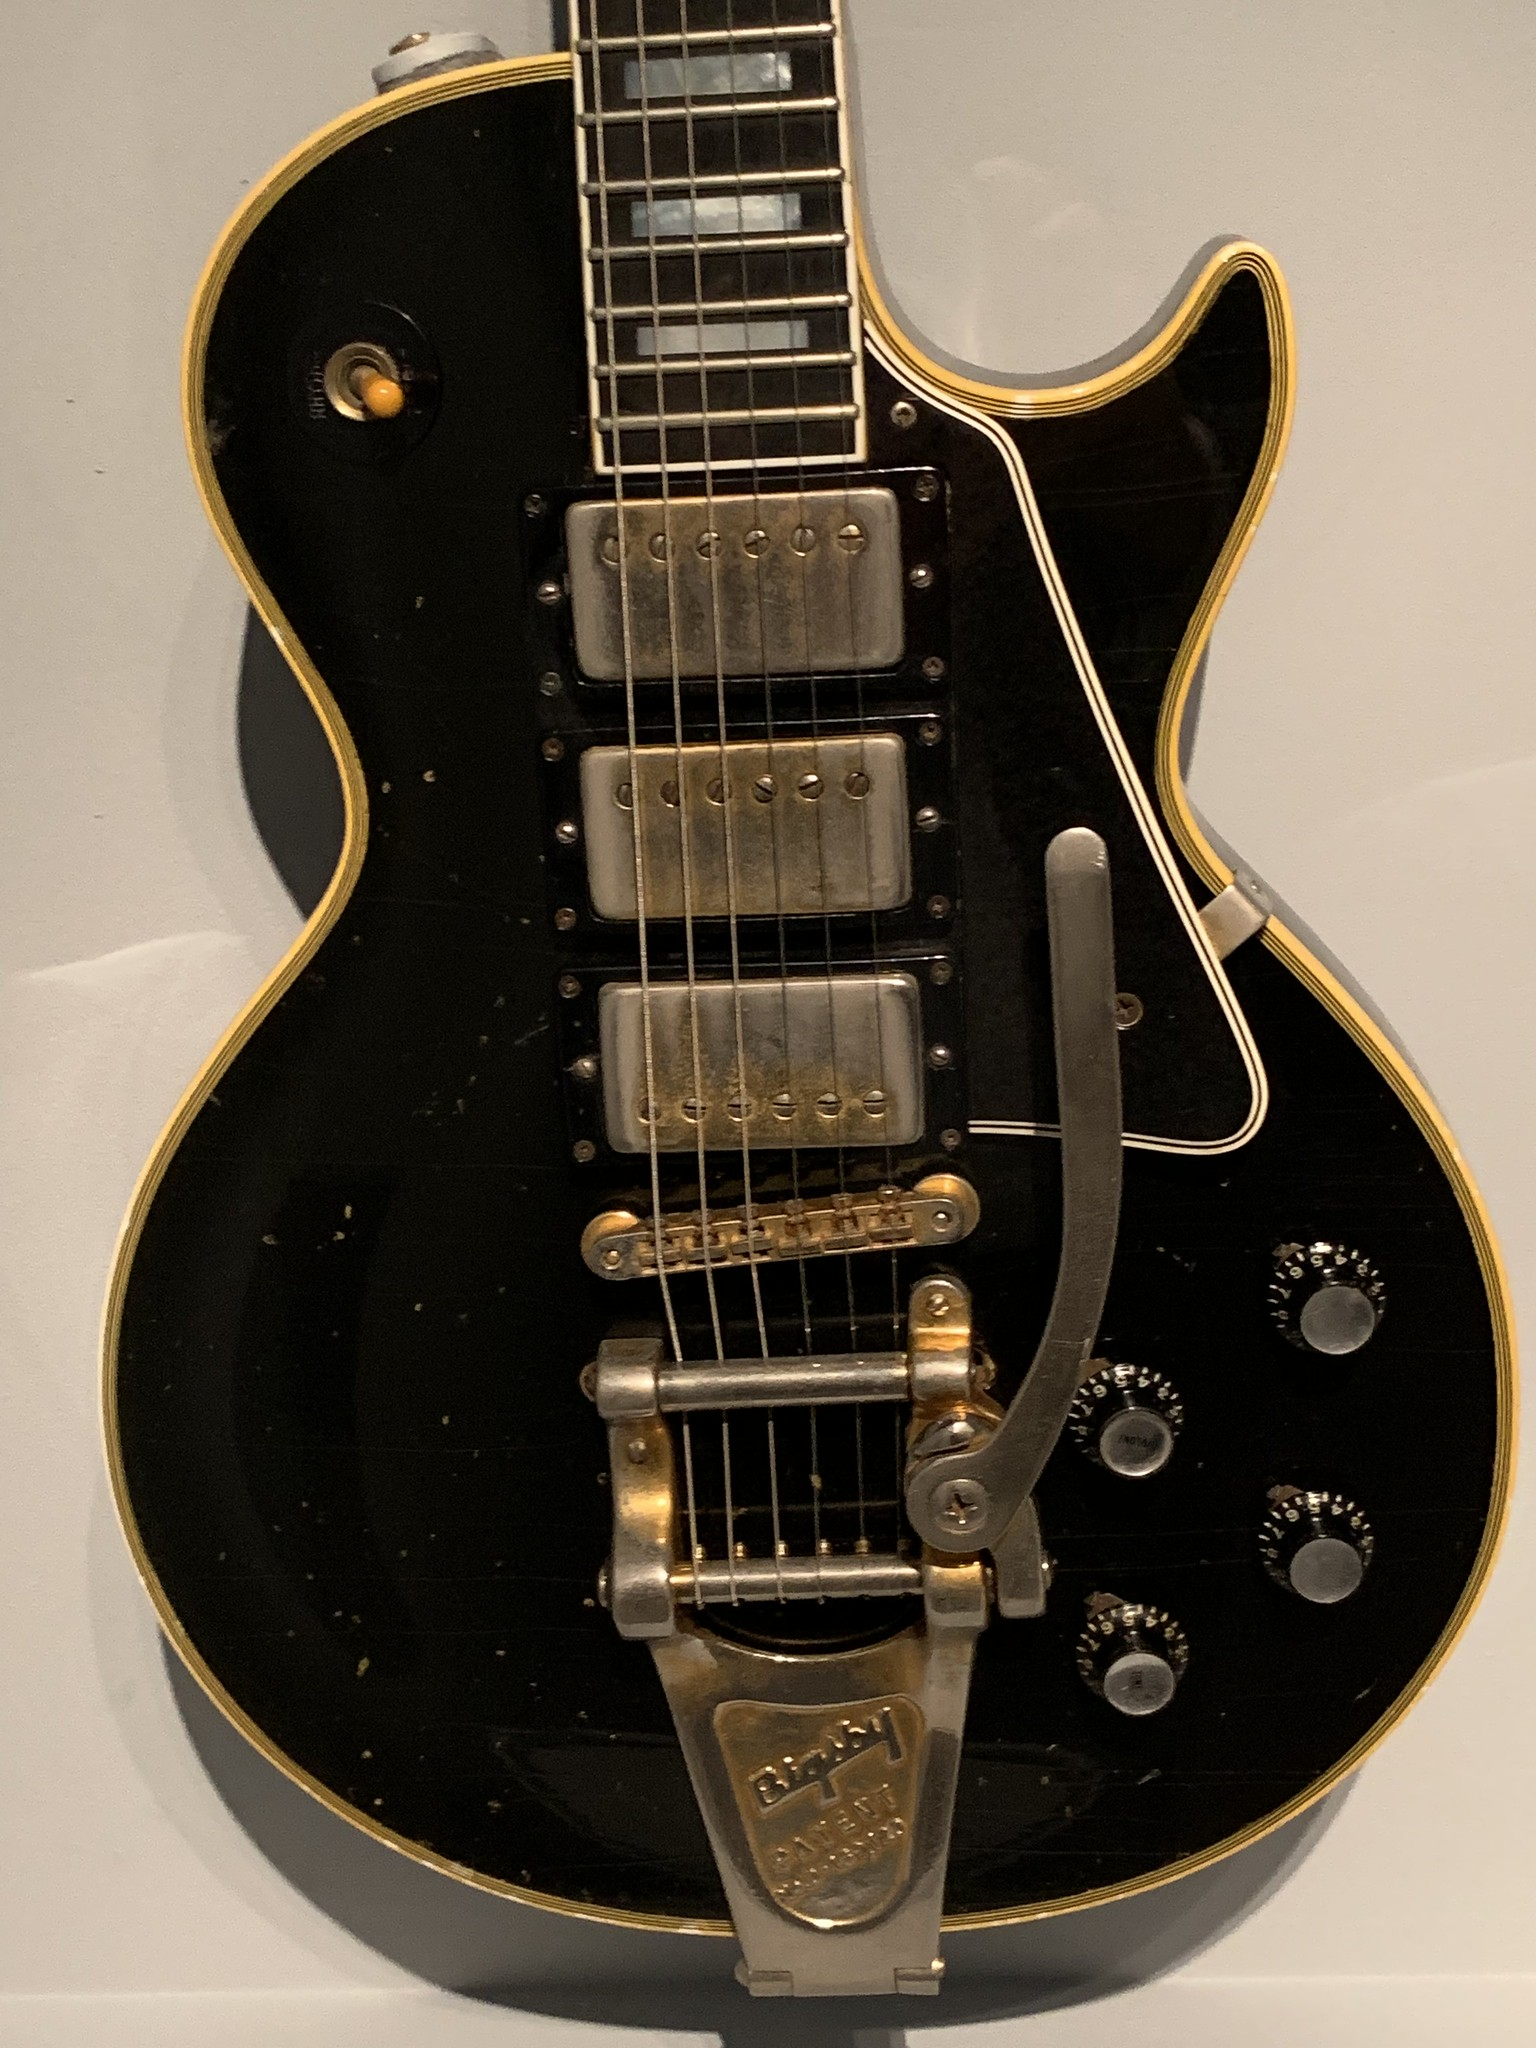 Jimmy Page Custom Les Paul - Black Beauty